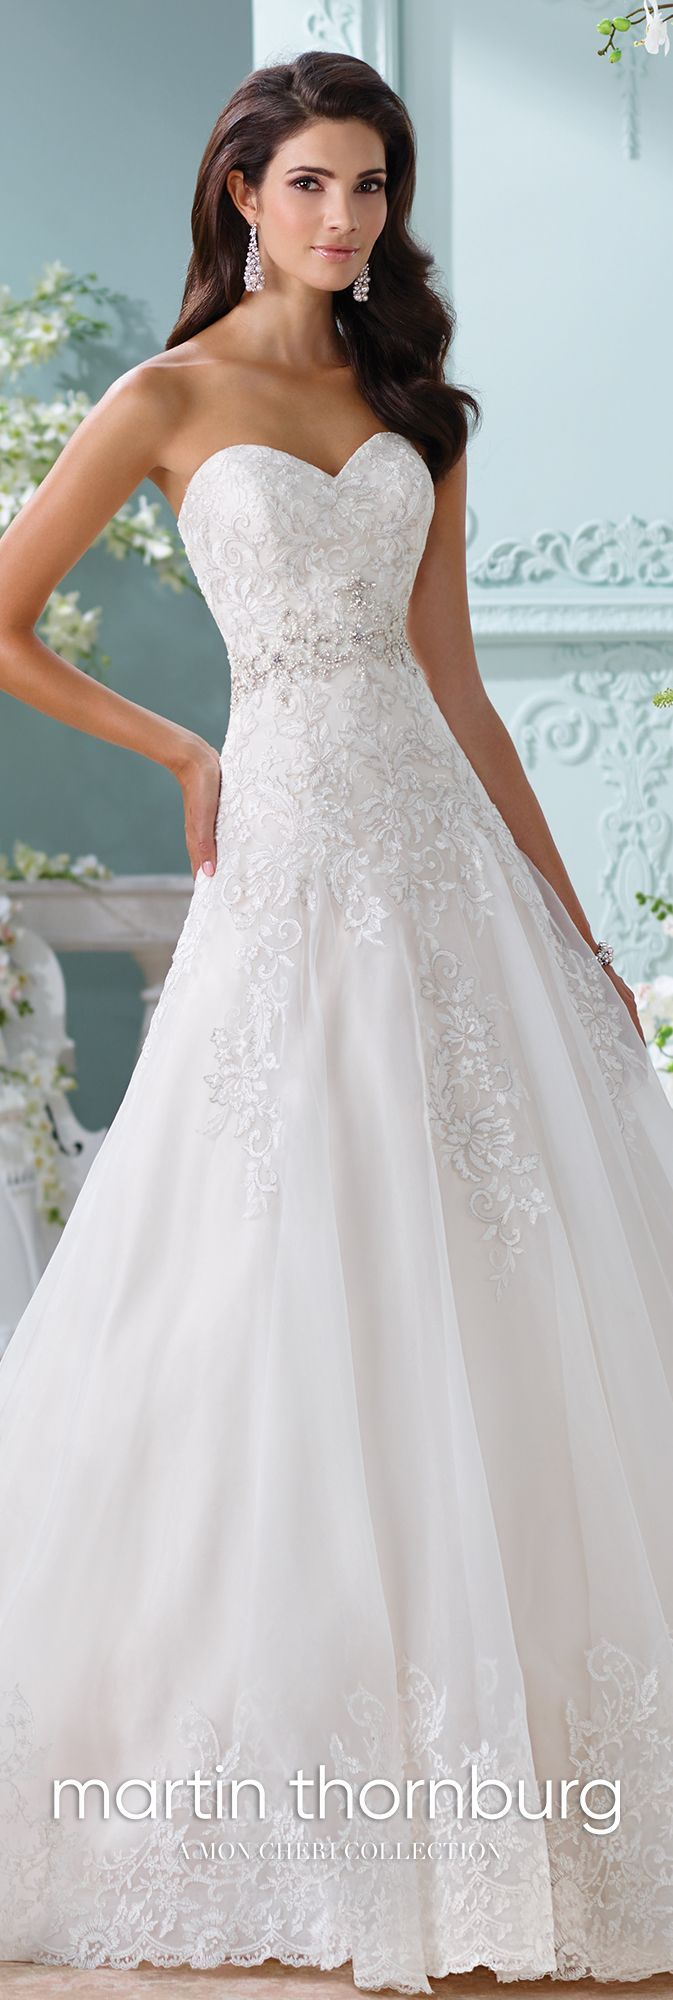 Martin Thornburg 116210 – Laina - Strapless organza and lace Aline wedding dress, metallic Schiffli lace appliqués over satin gown with sweetheart neckline, hand-beaded jeweled motif at natural waist, scalloped hem and chapel length train, detachable spaghetti and halter straps included. #satinweddingdresses